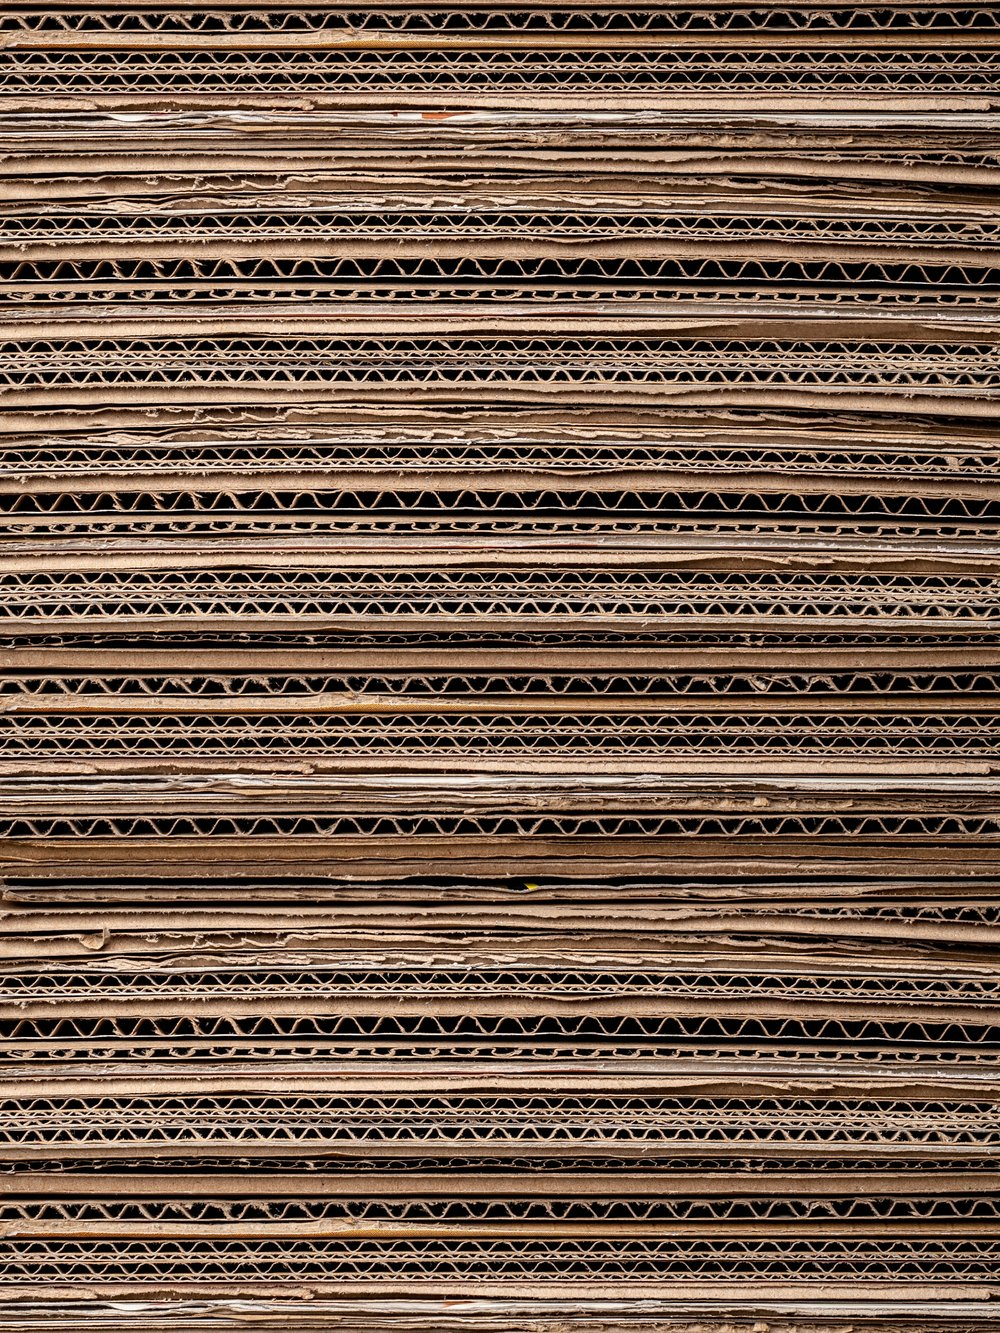 brown-cardboard-close-up-1555199.jpg